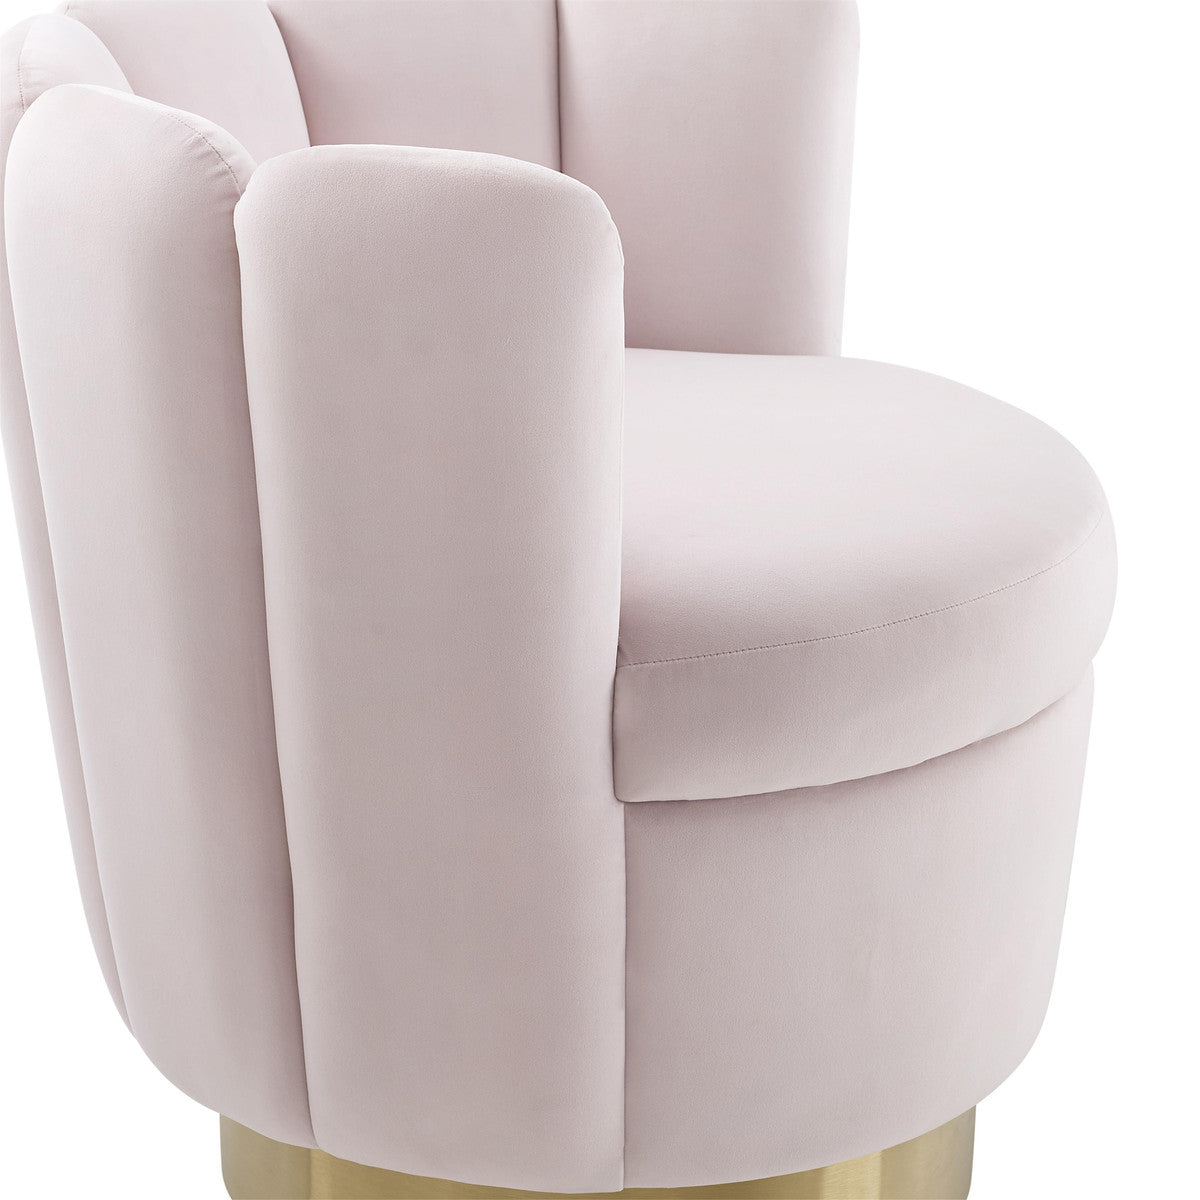 Yad Blush Velvet Swivel Chair